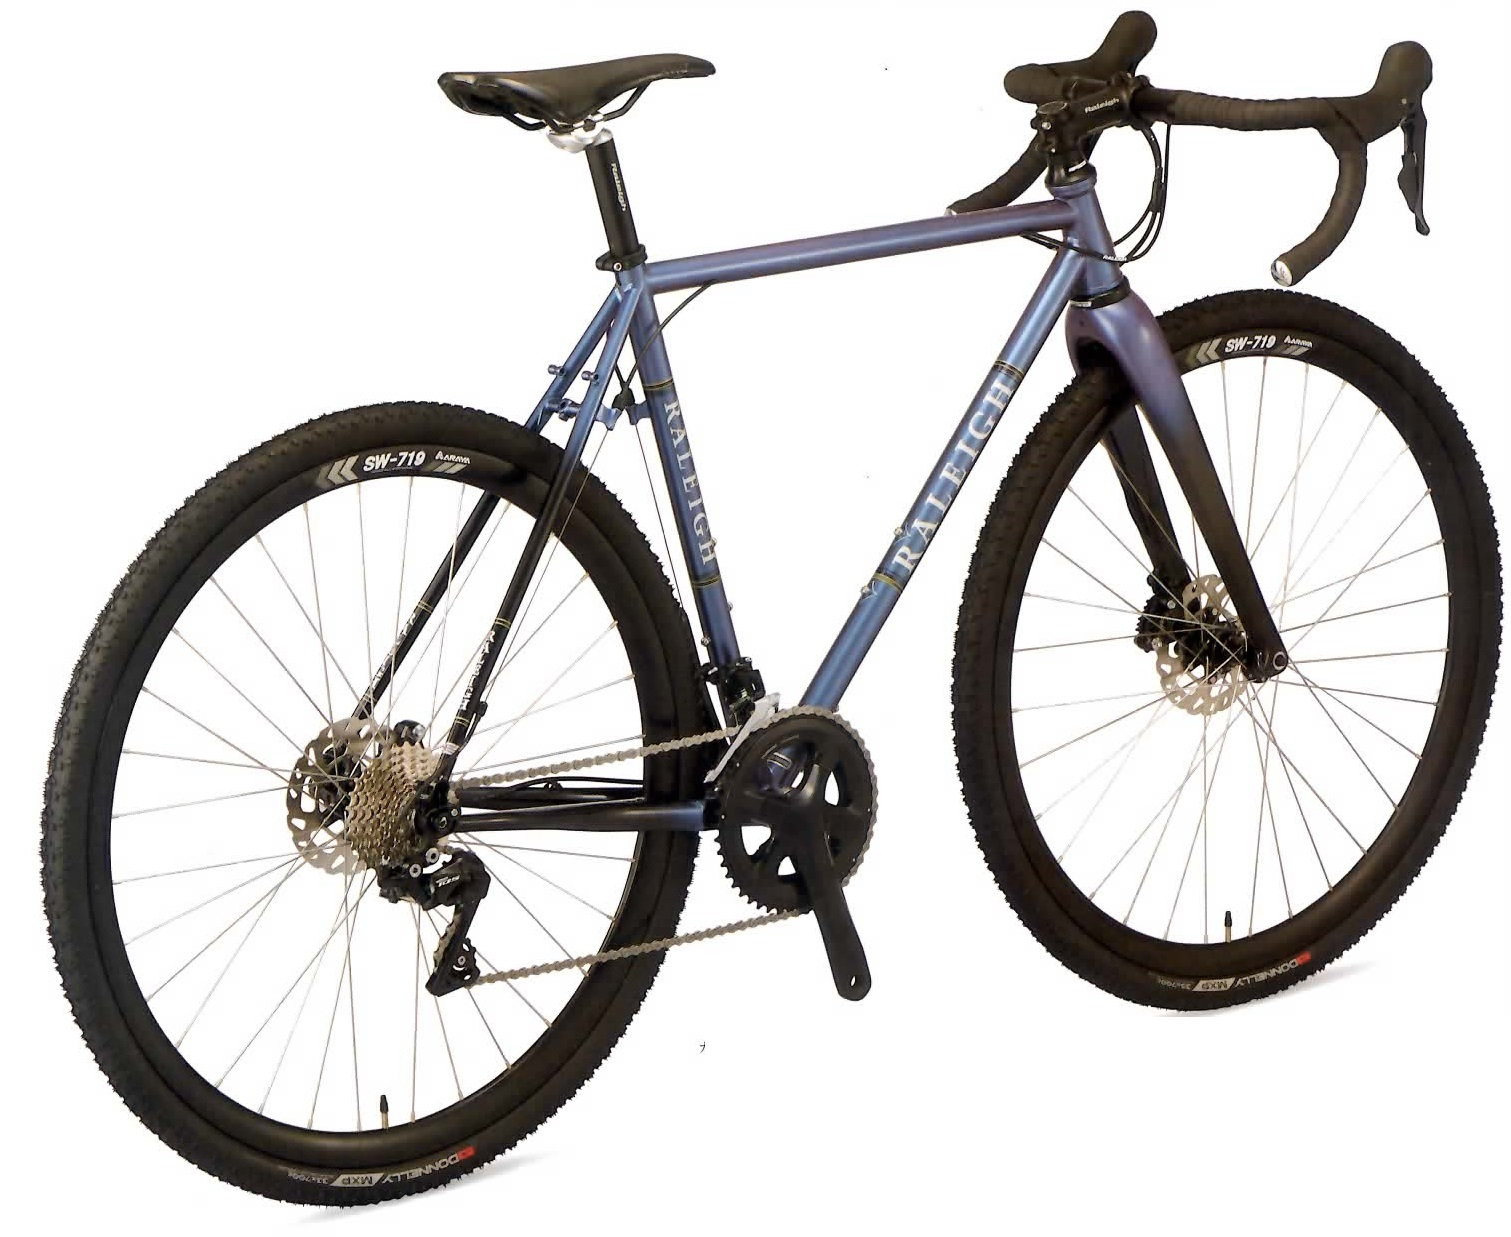 RALEIGH(ラレー)CRC 105 DISC完成車